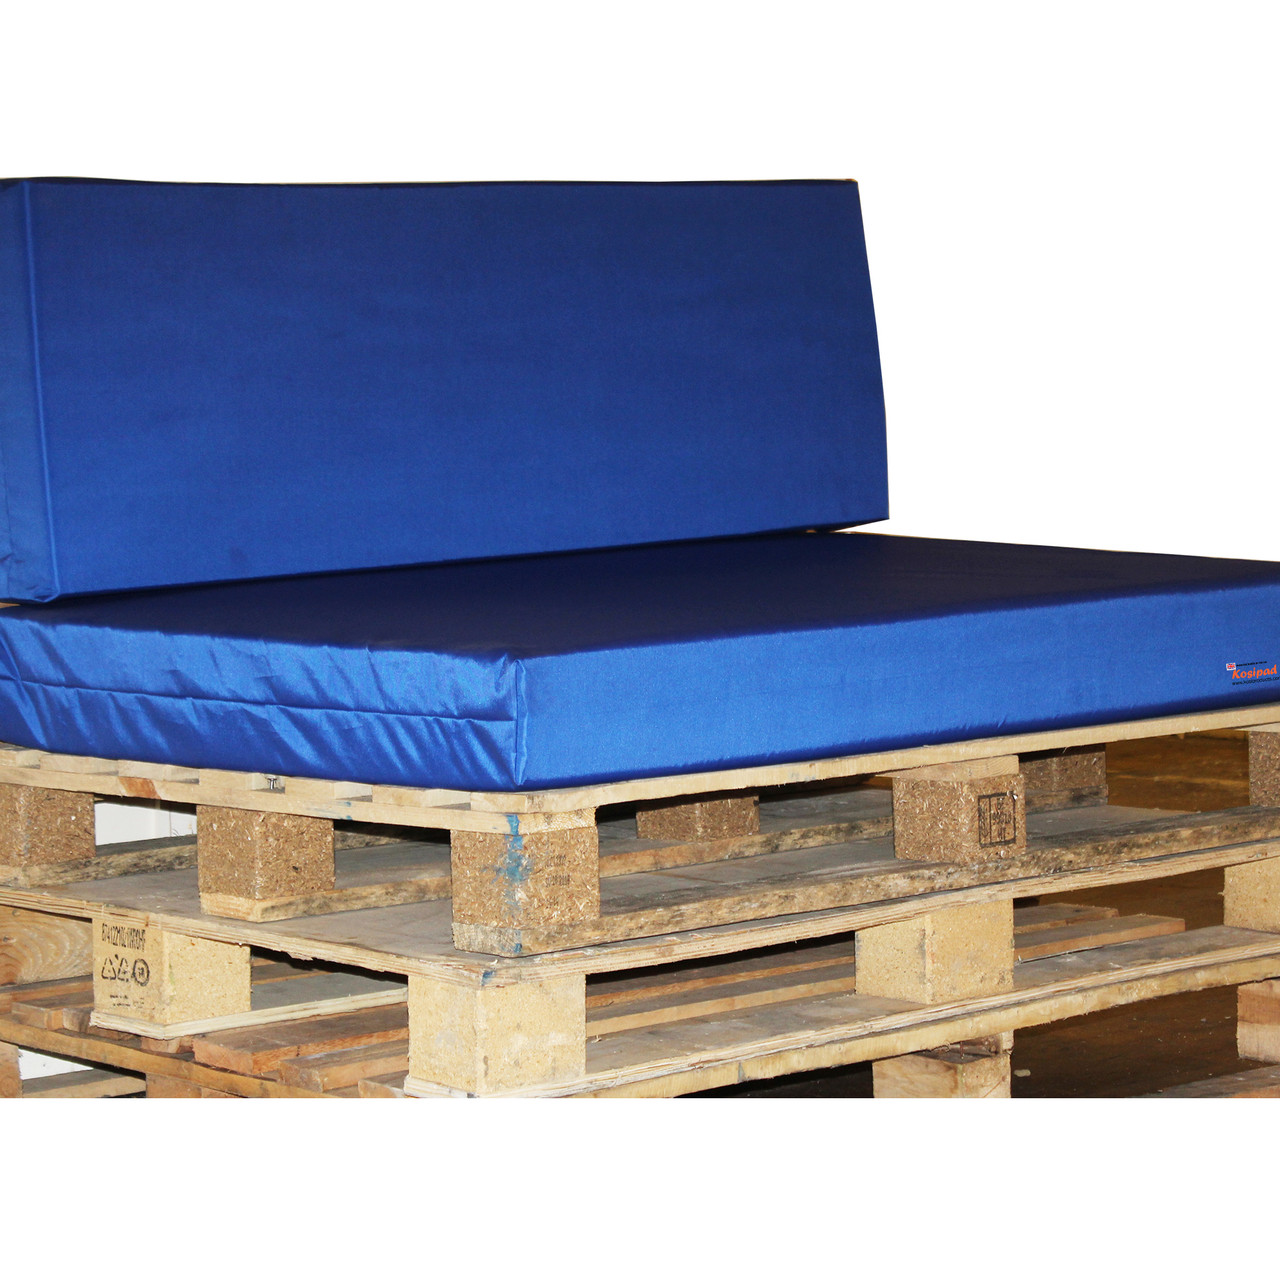 Kosipad Royal Blue cushions for pallet furniture for Euro Pallets